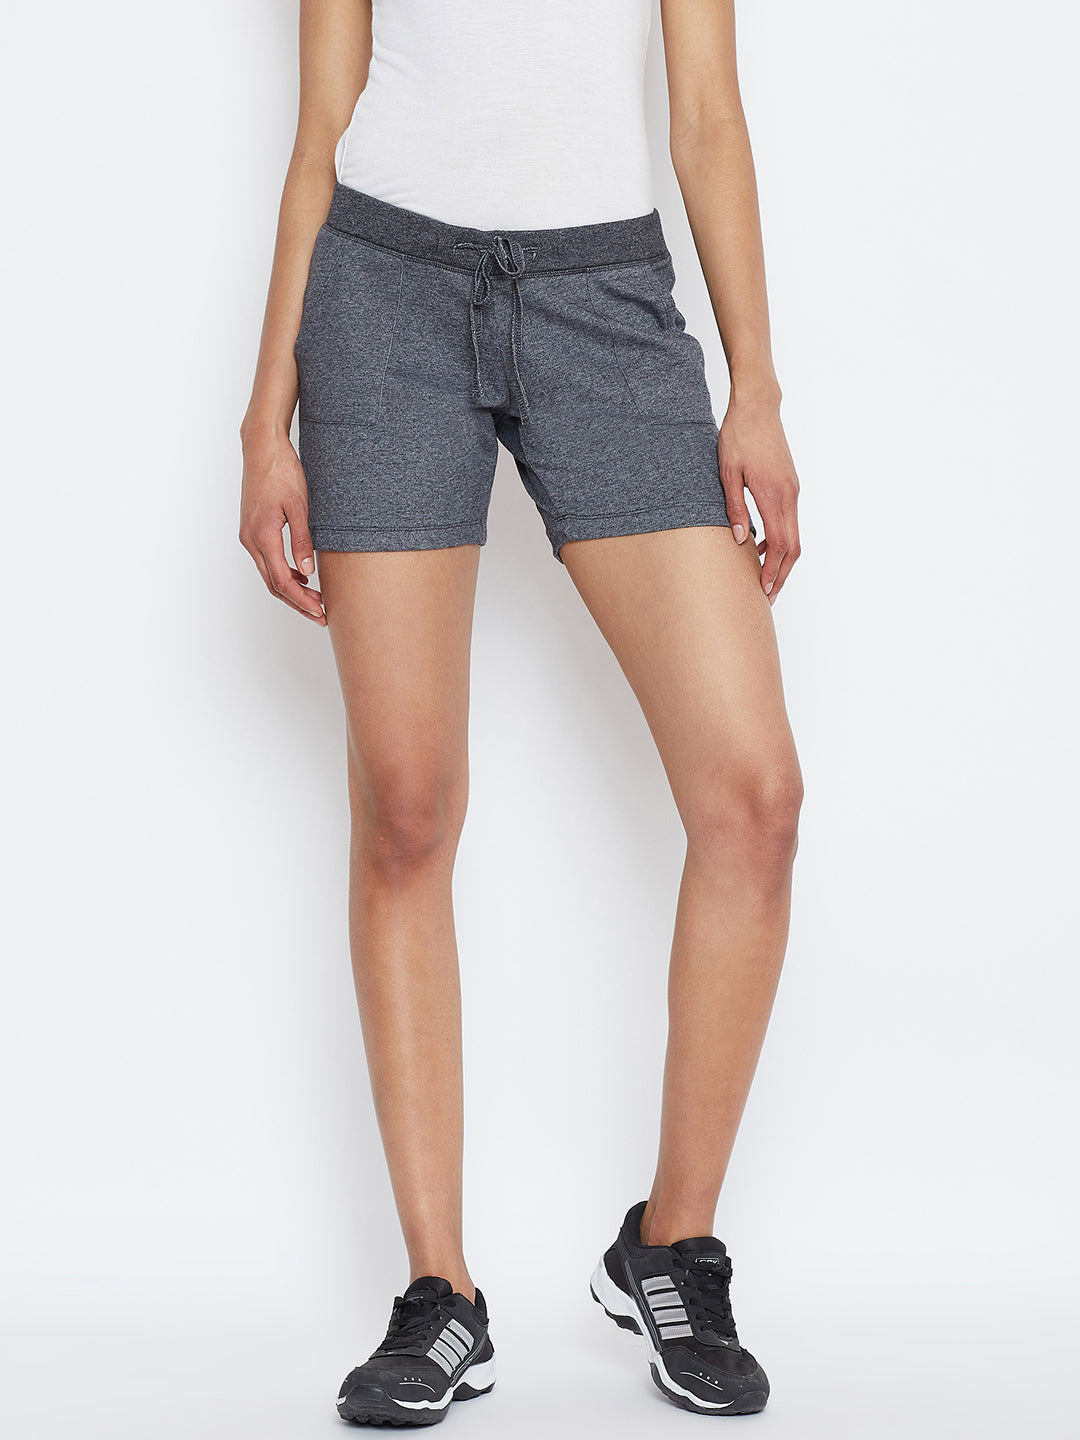 JUMP USA Women Grey Solid Shorts - JUMP USA